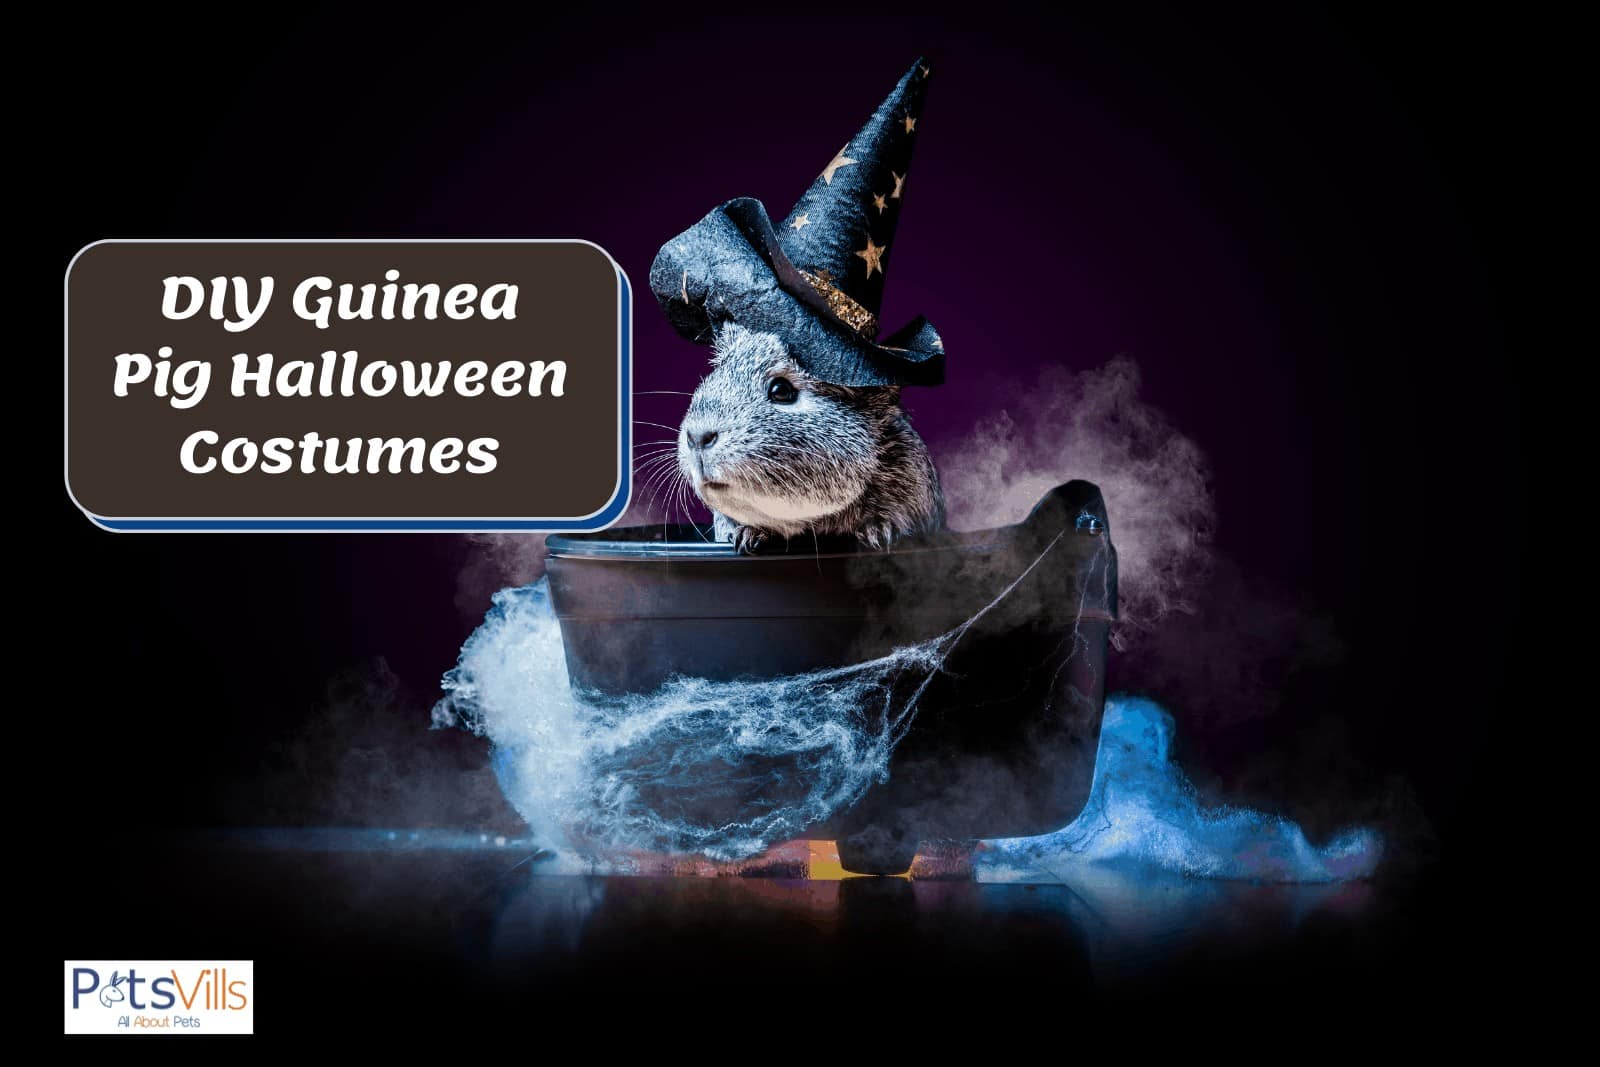 a cute gray guinea pig in a boat wearing a witch hat (How to Make Guinea Pig Halloween Costumes)